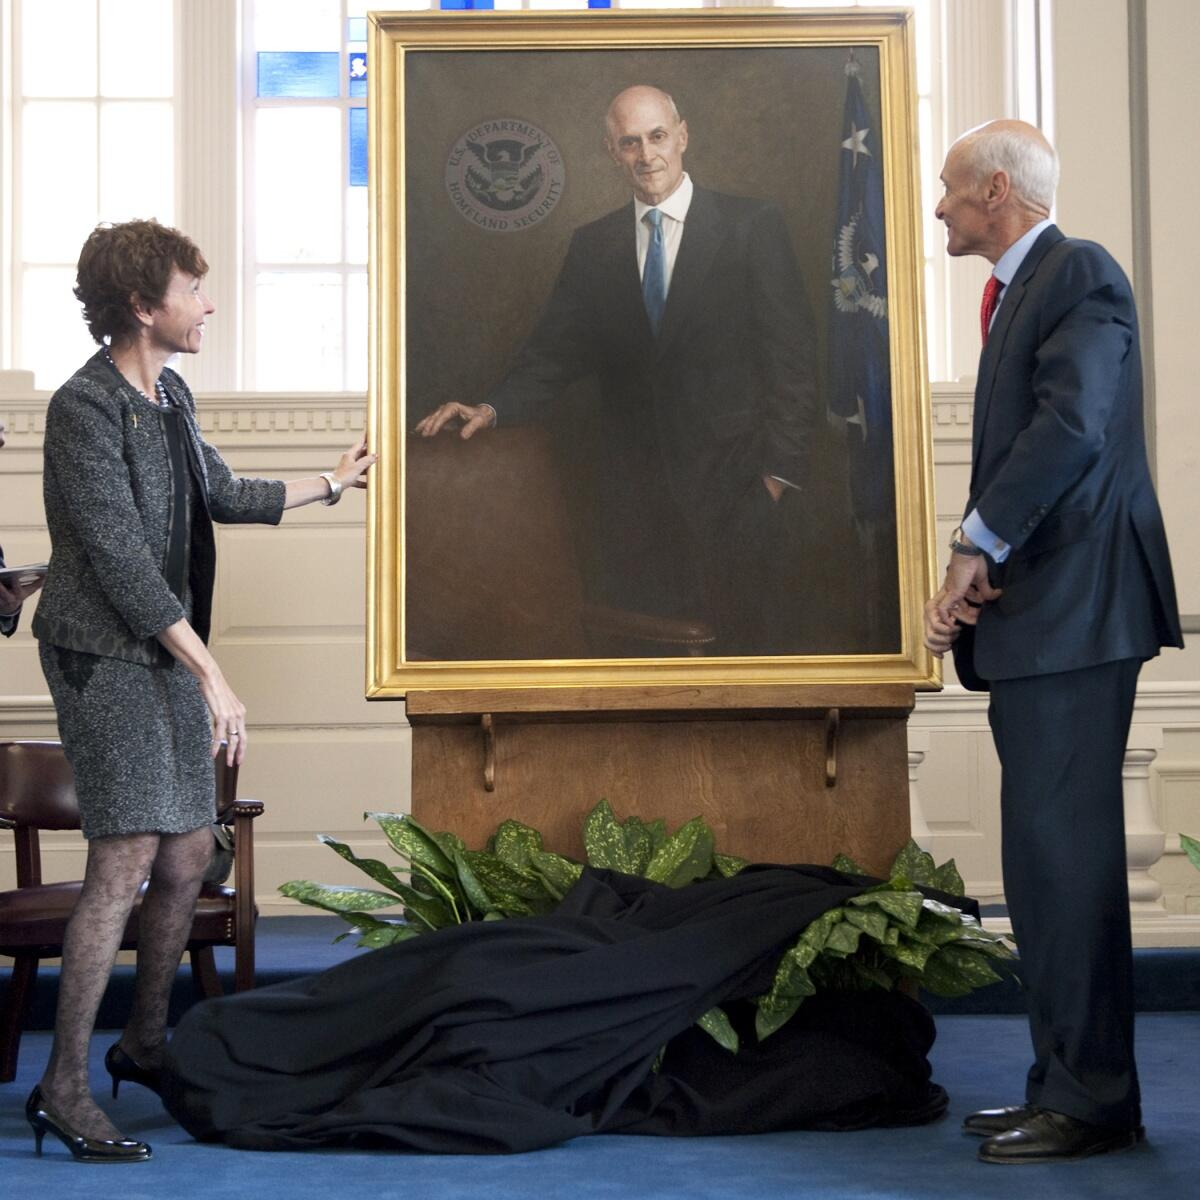 Secretary Chertoff and his wife, Mrs. Meryl Chertoff, unveil his official portrait. Official DHS photo.